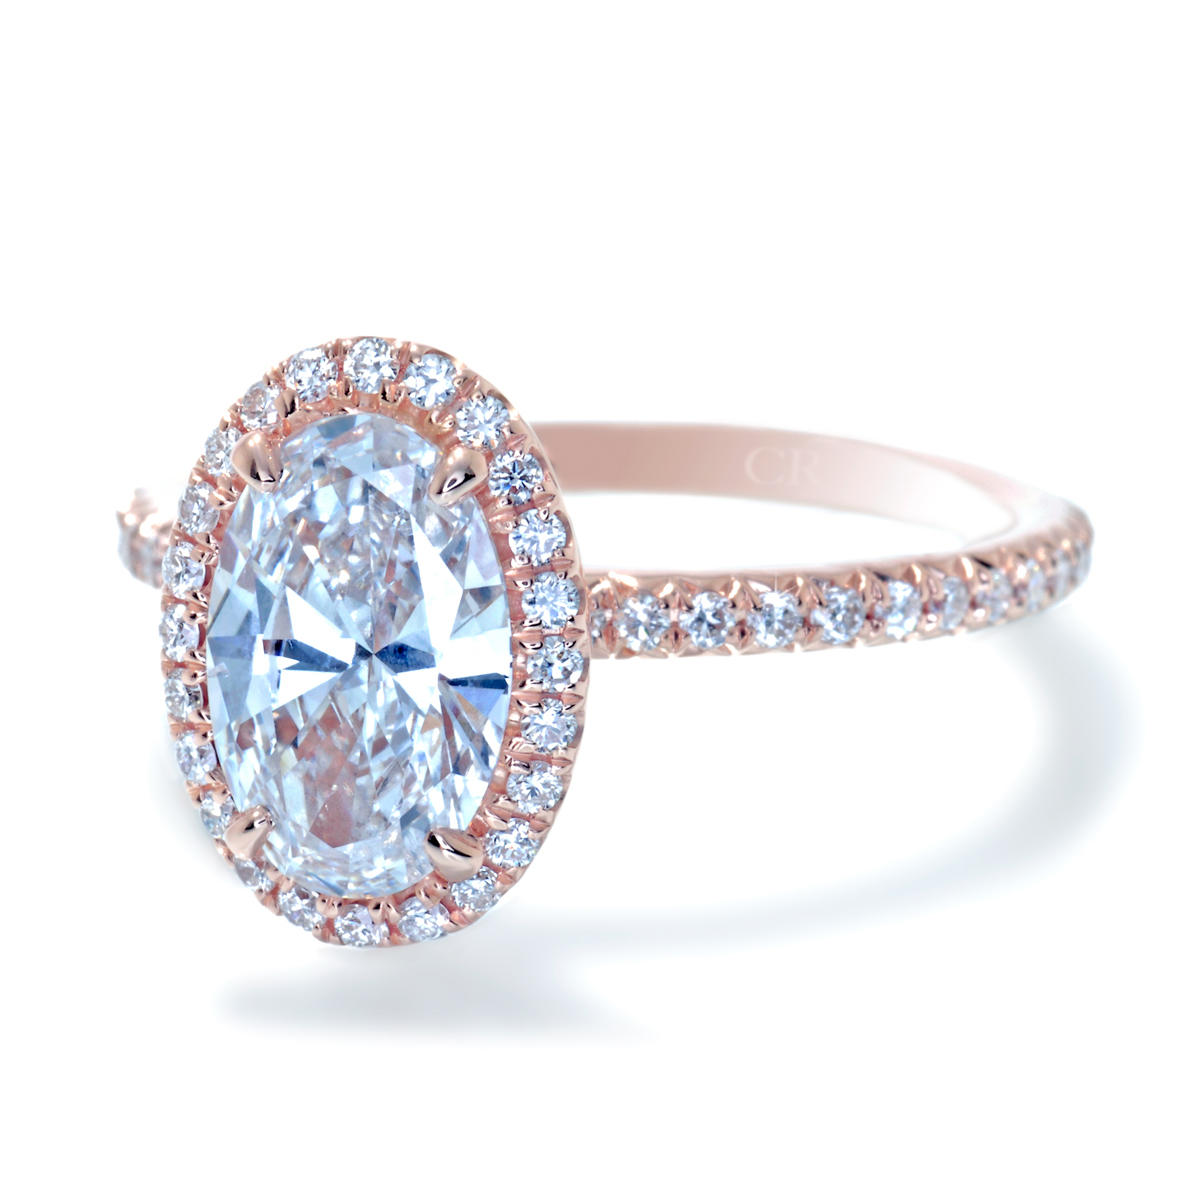 Catherine Ryder Engagement Rings